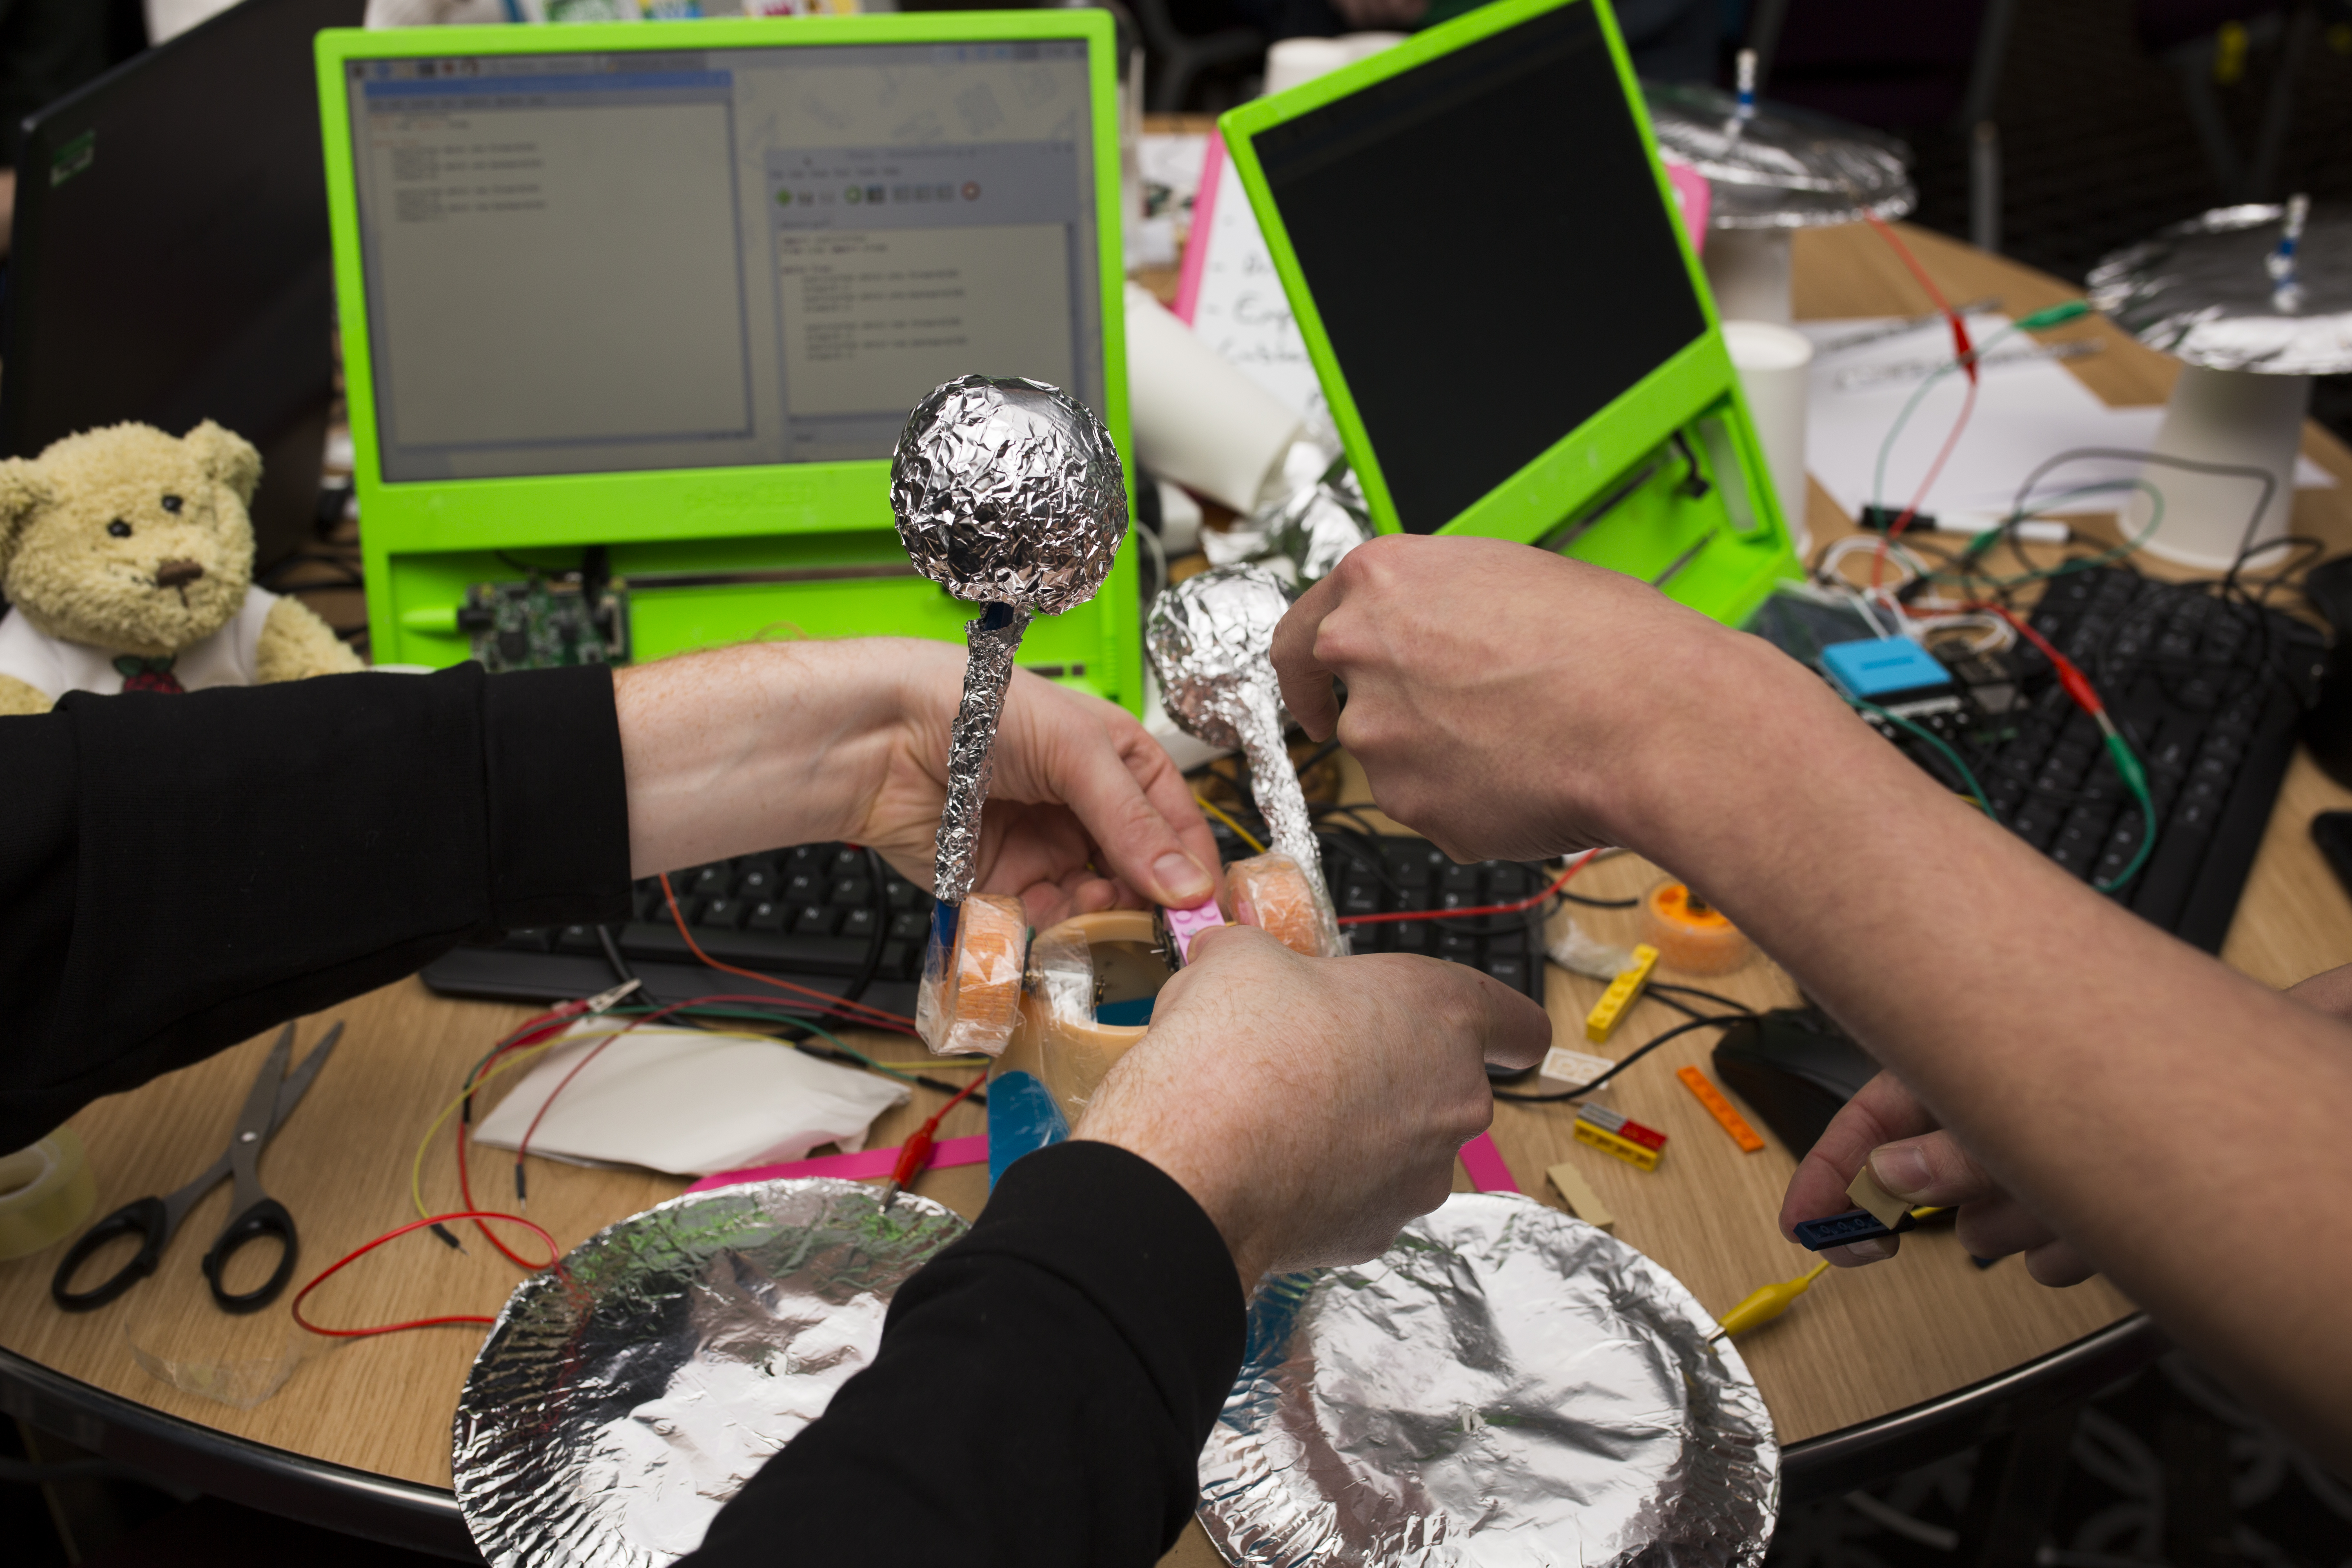 A physical computing project, consisting of wired components and foil joysticks used to control the behaviour of a Raspberry Pi